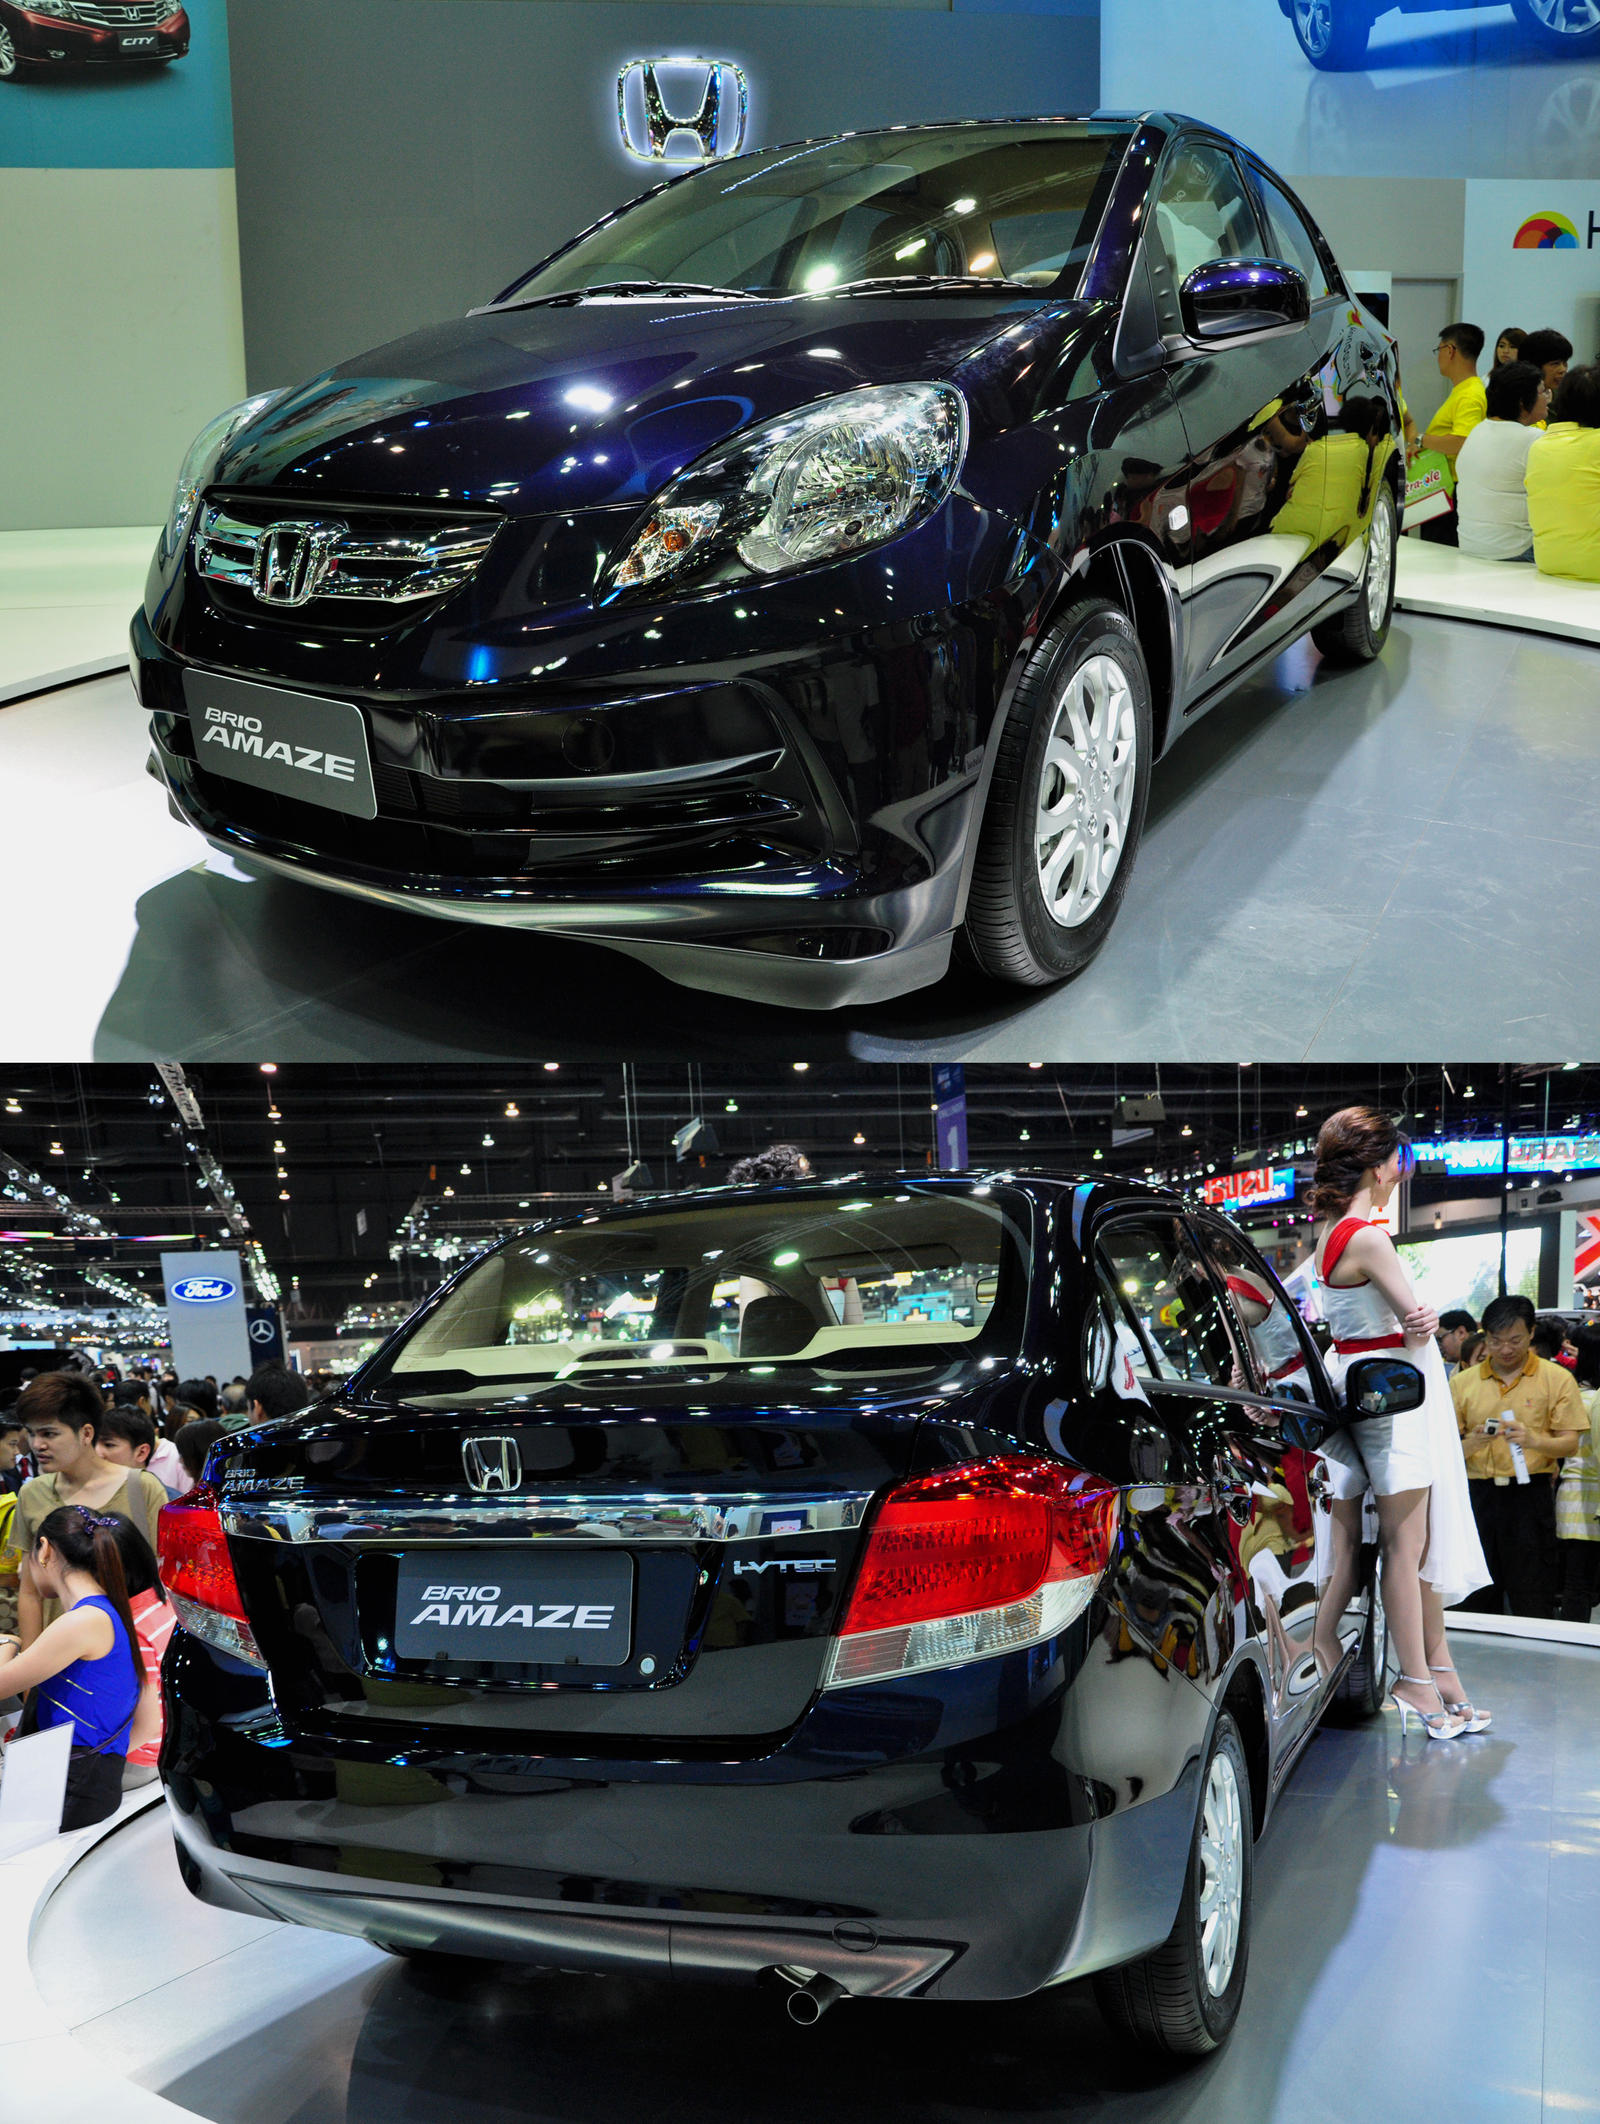 Motor Expo 2012 40 by zynos958